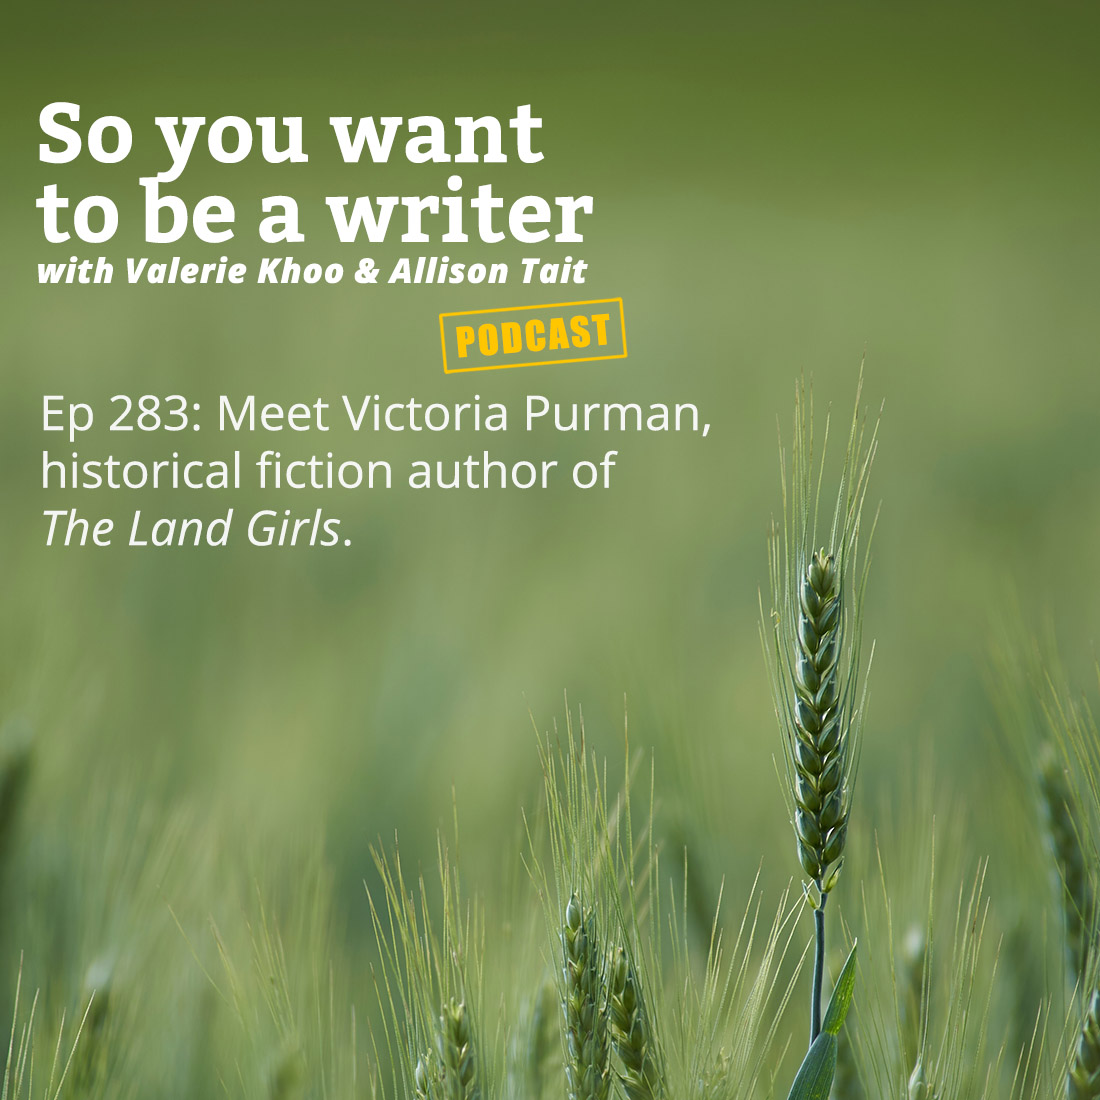 Podcast artwork - episode 283 of So you want to be a writer. Meet Victoria Purman, historical fiction author of The Land Girls